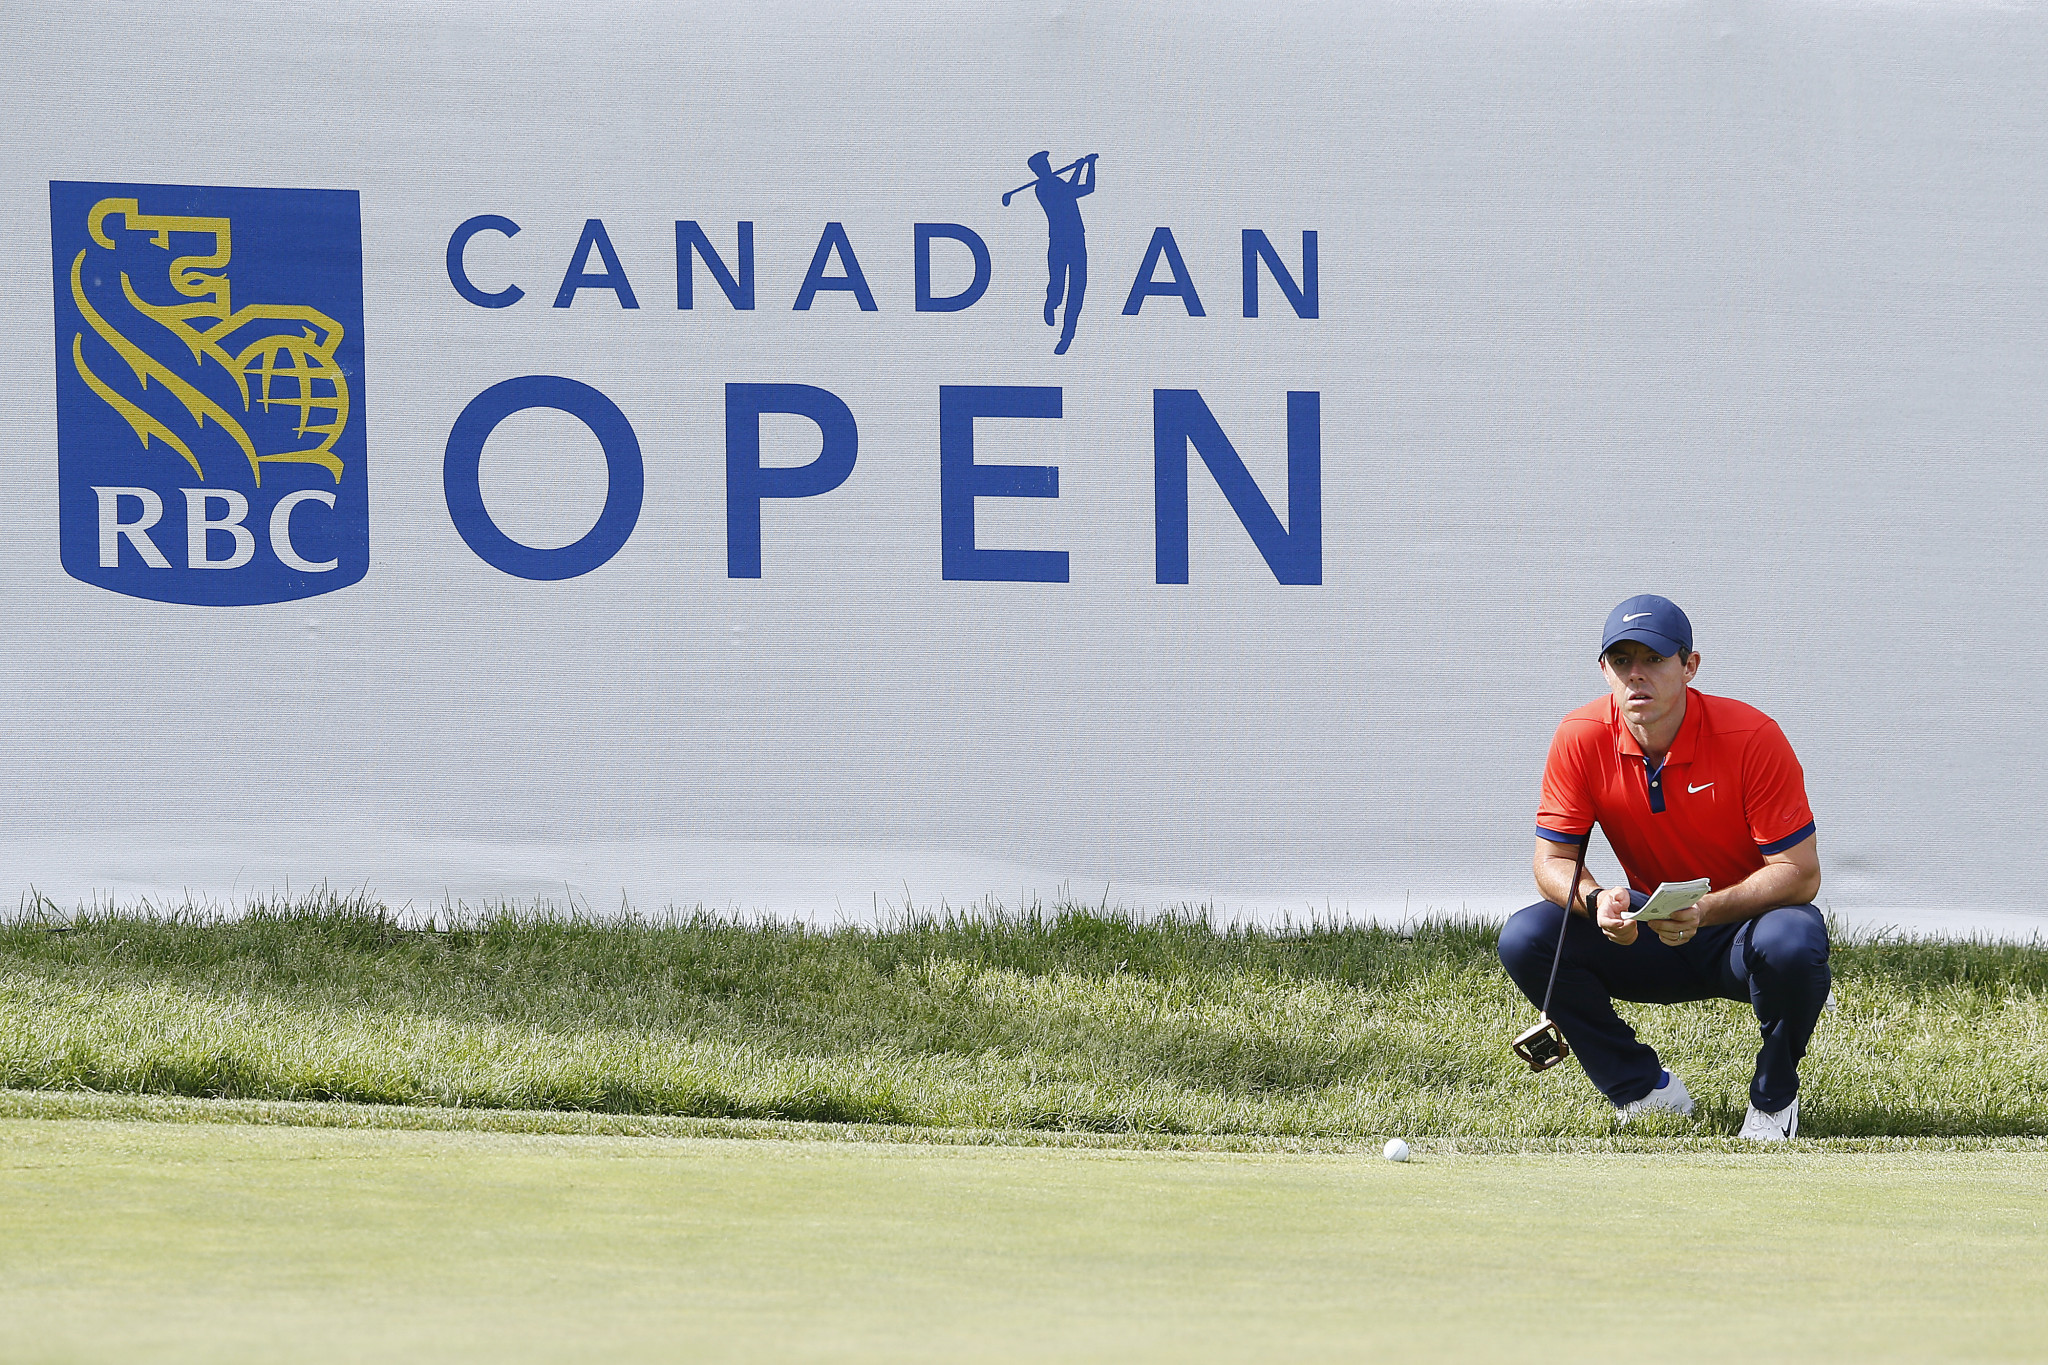 PGA Tour's RBC Canadian Open likely to be cancelled due to COVID-19 pandemic